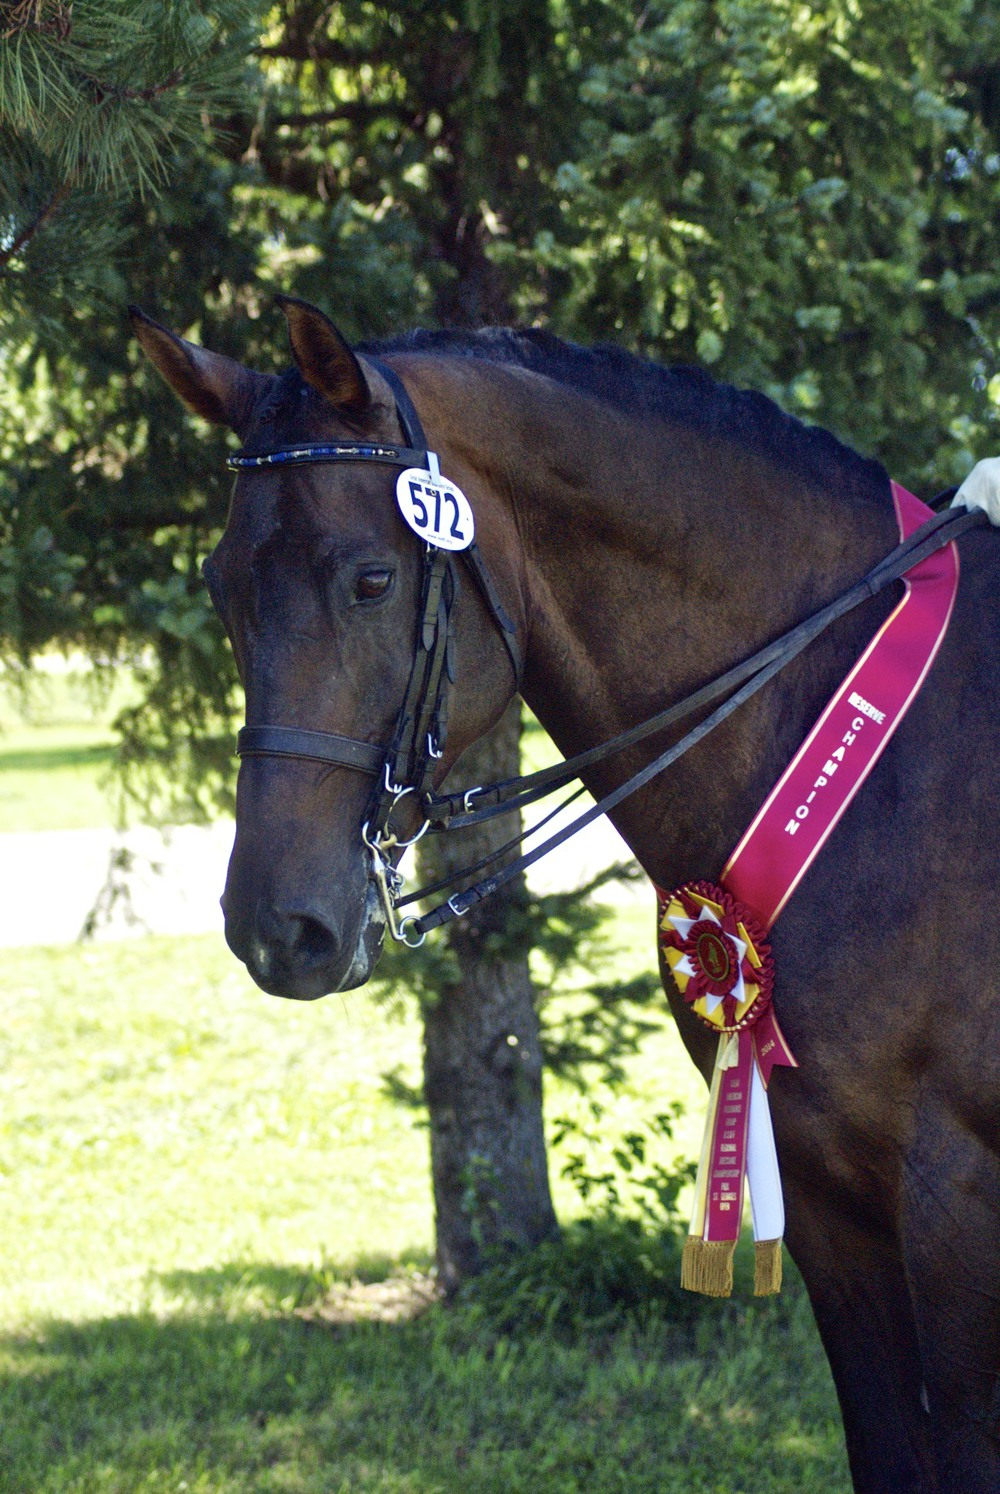 Paddington, owned by Leslie Burket, and Martin Kuhn won both the PSG & I1 highpoints.